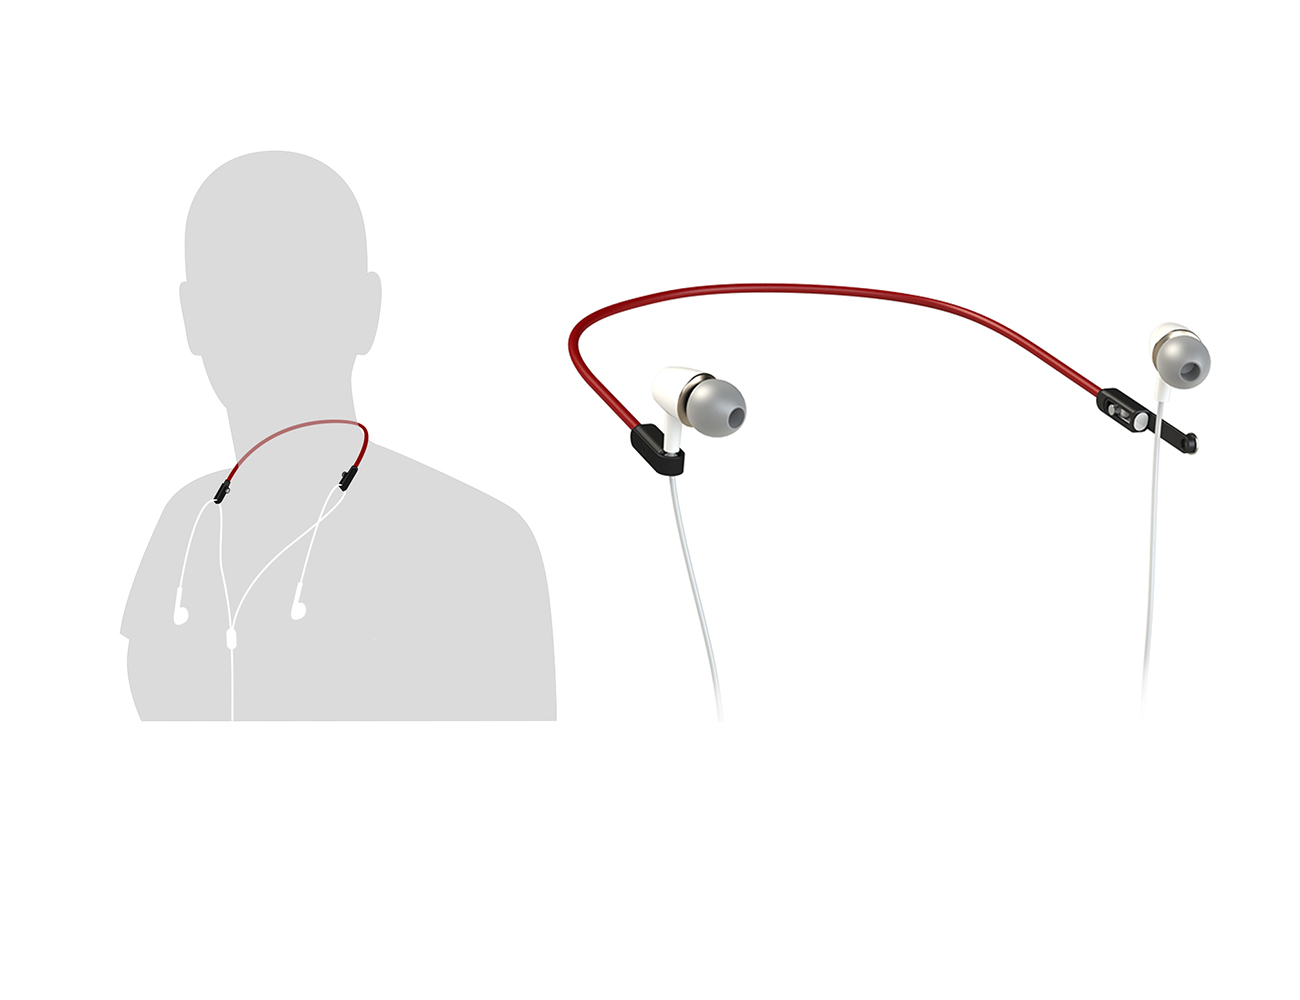 The Best Earbud Accessory Ever Made